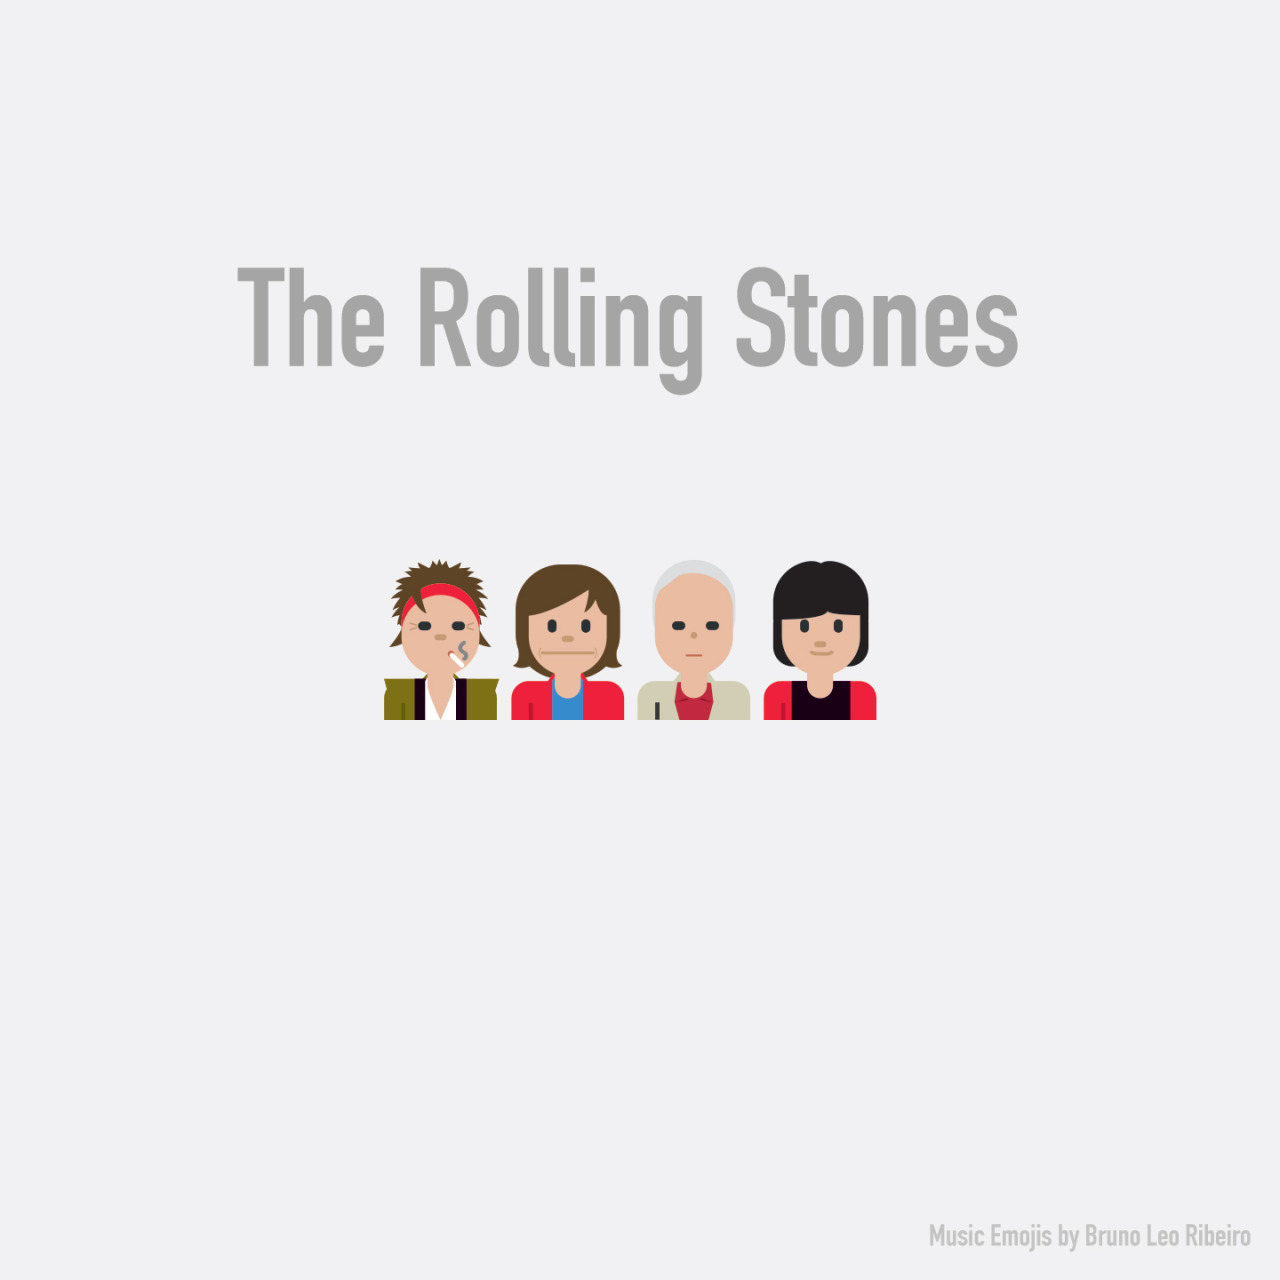 The Rolling Stones emoji